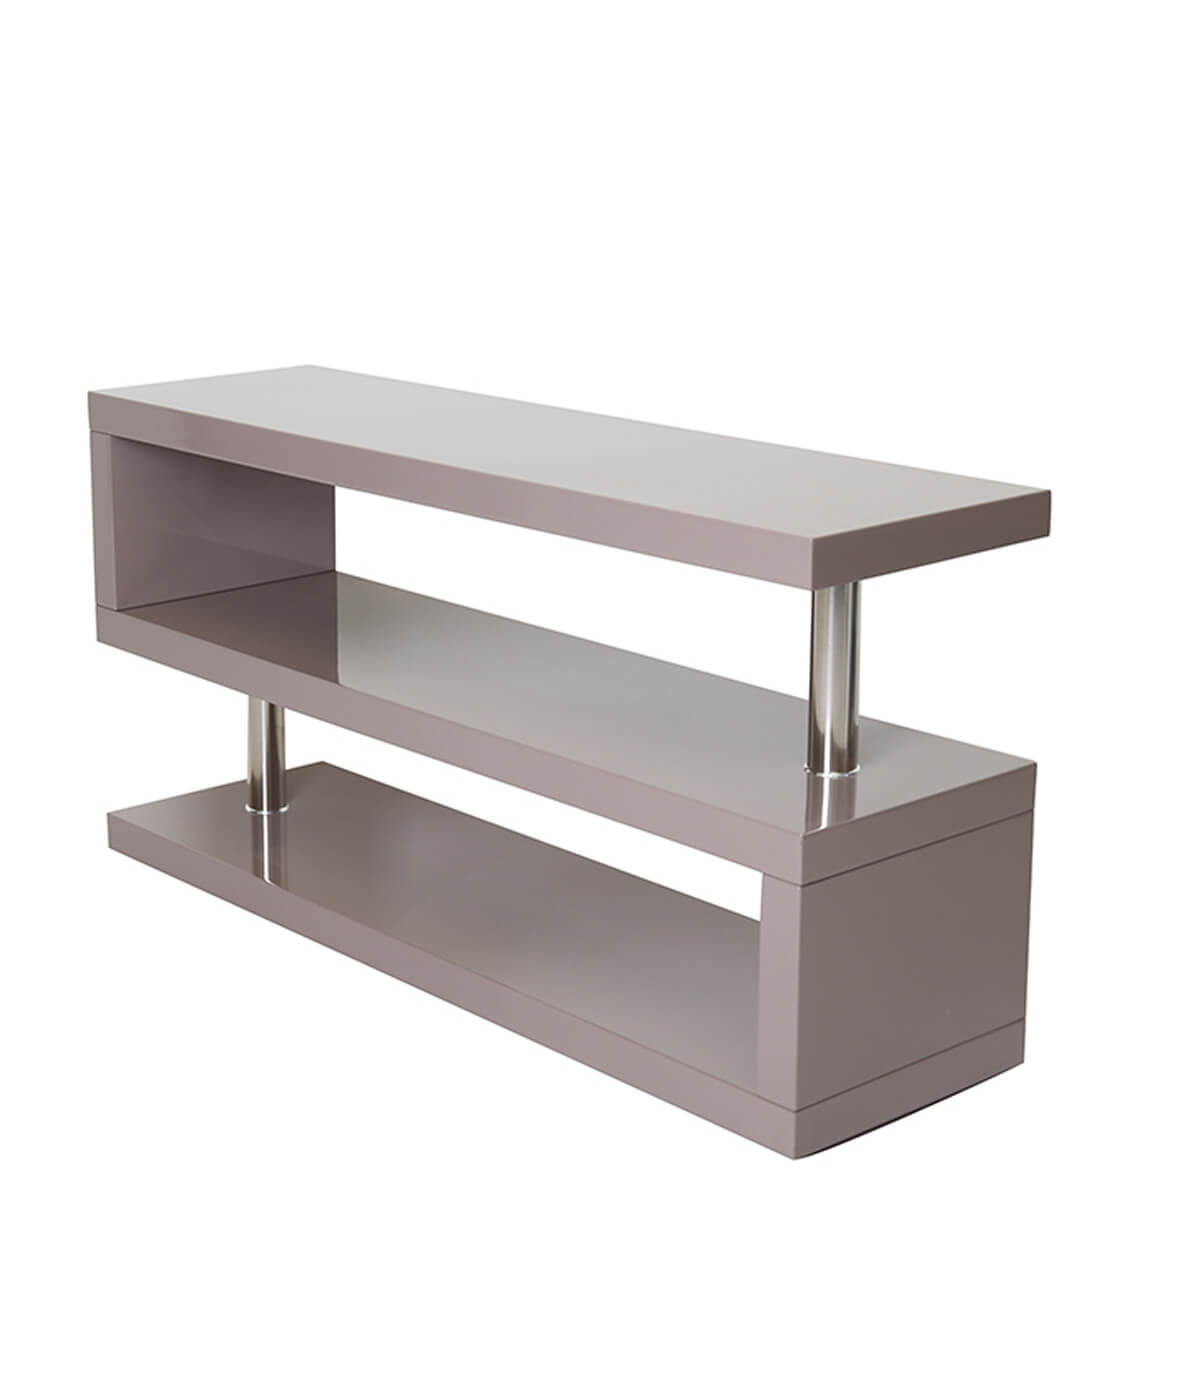 Miami Grey High Gloss Modern Tv Stand Unit Manchester Furniture